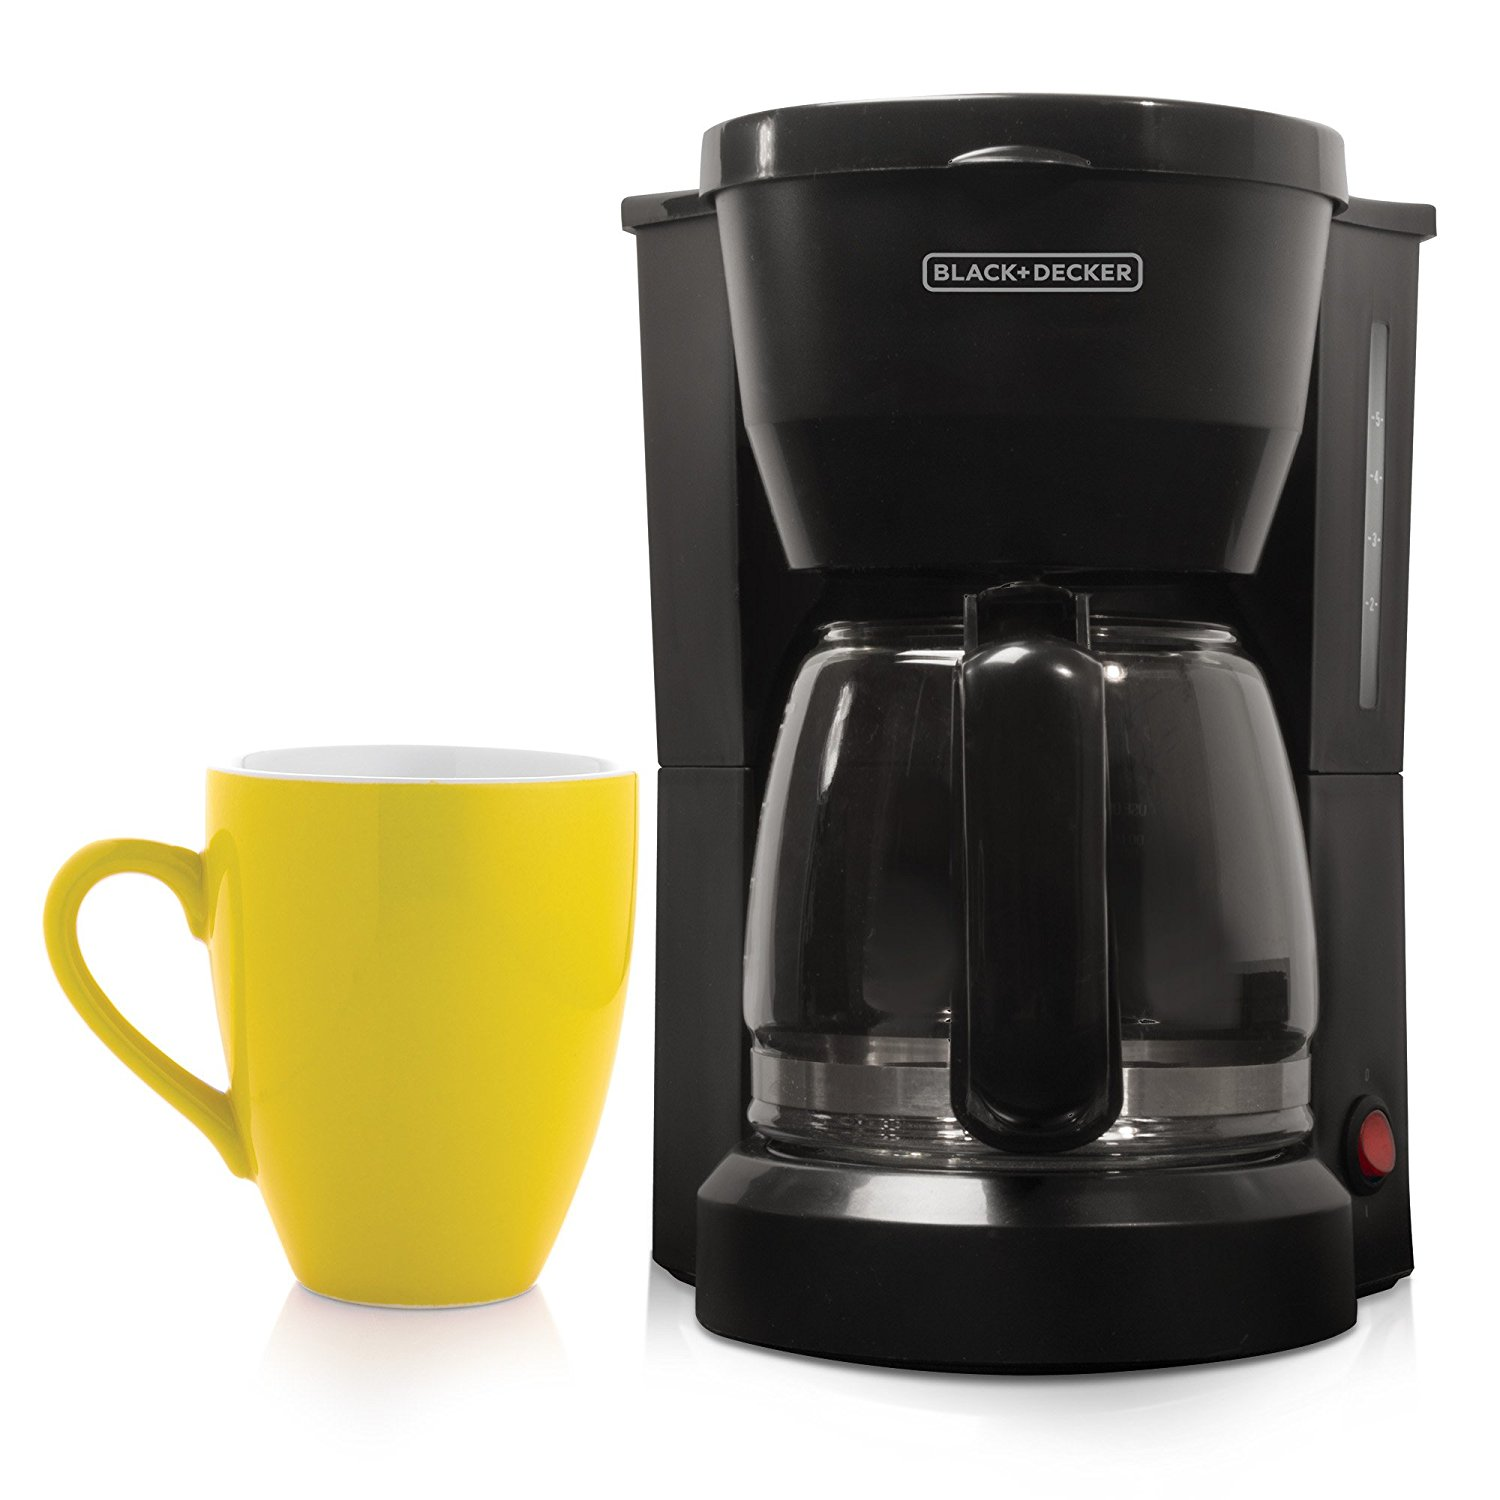 Black & Decker DCM600B 5-Cup Coffeemaker Best Price - Black & Decker DCM600B 5-Cup Coffeemaker ...